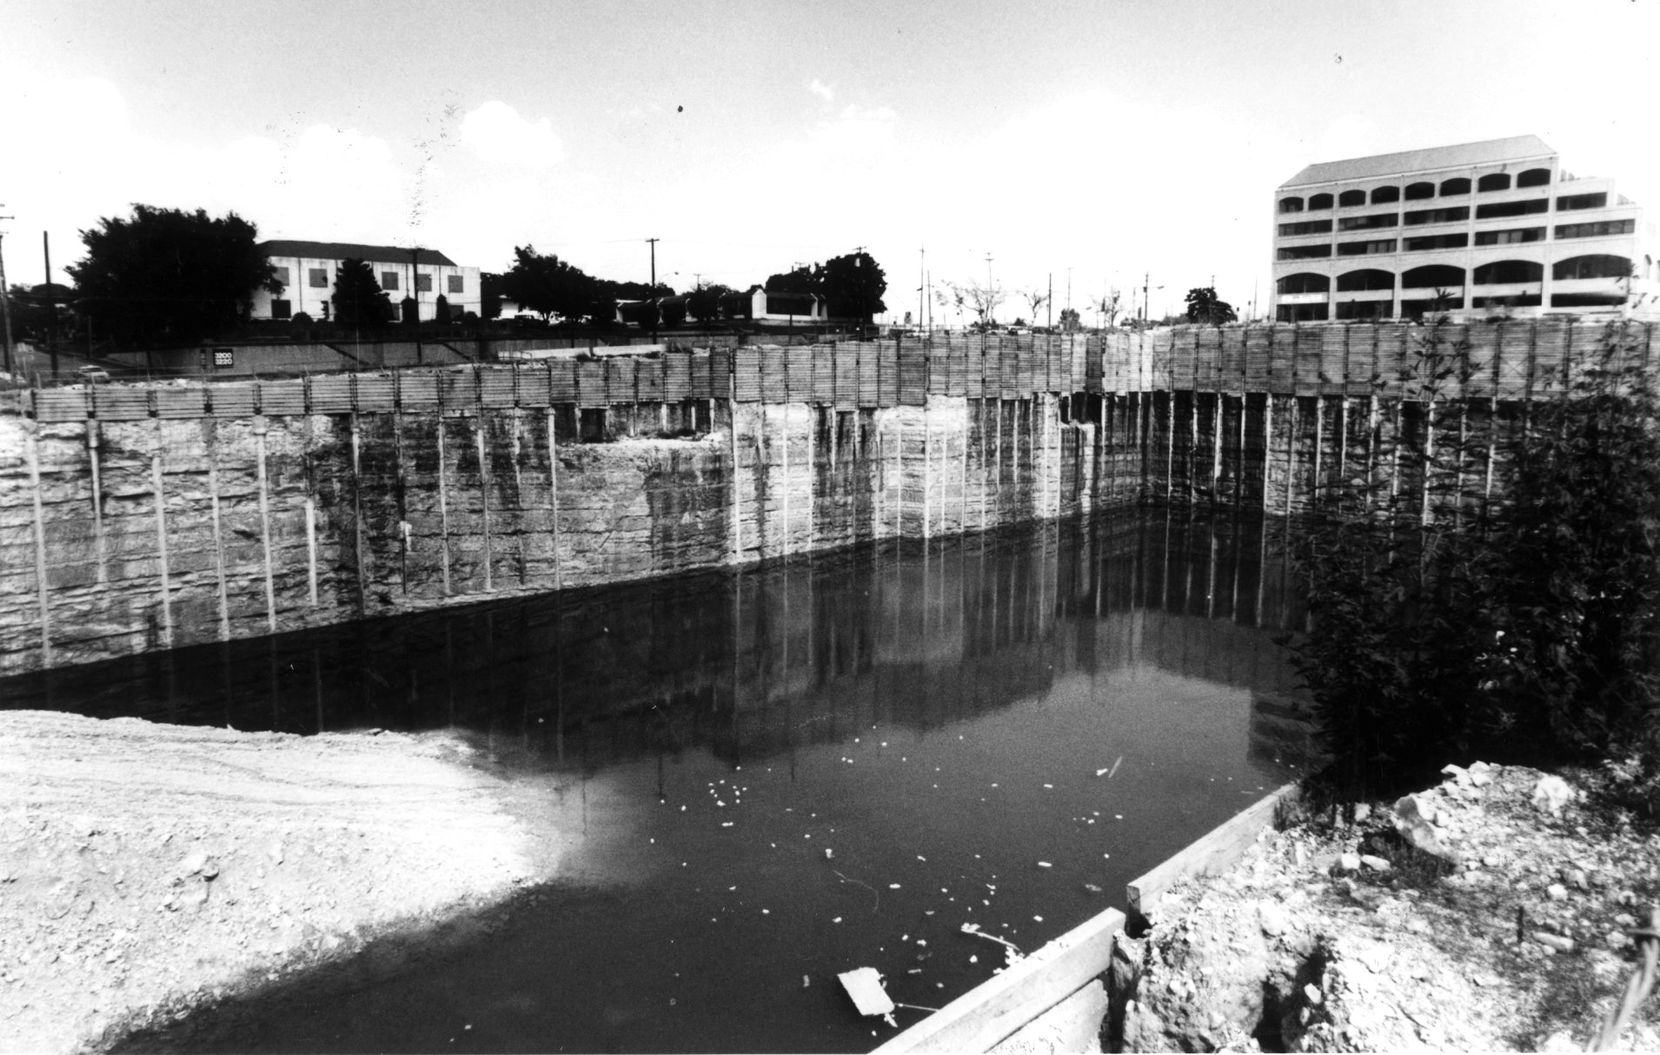 A 90-foot-deep hole filled with water at Cole and Lemmon in Uptown was a symbol of the real estate bust in the 1980s.